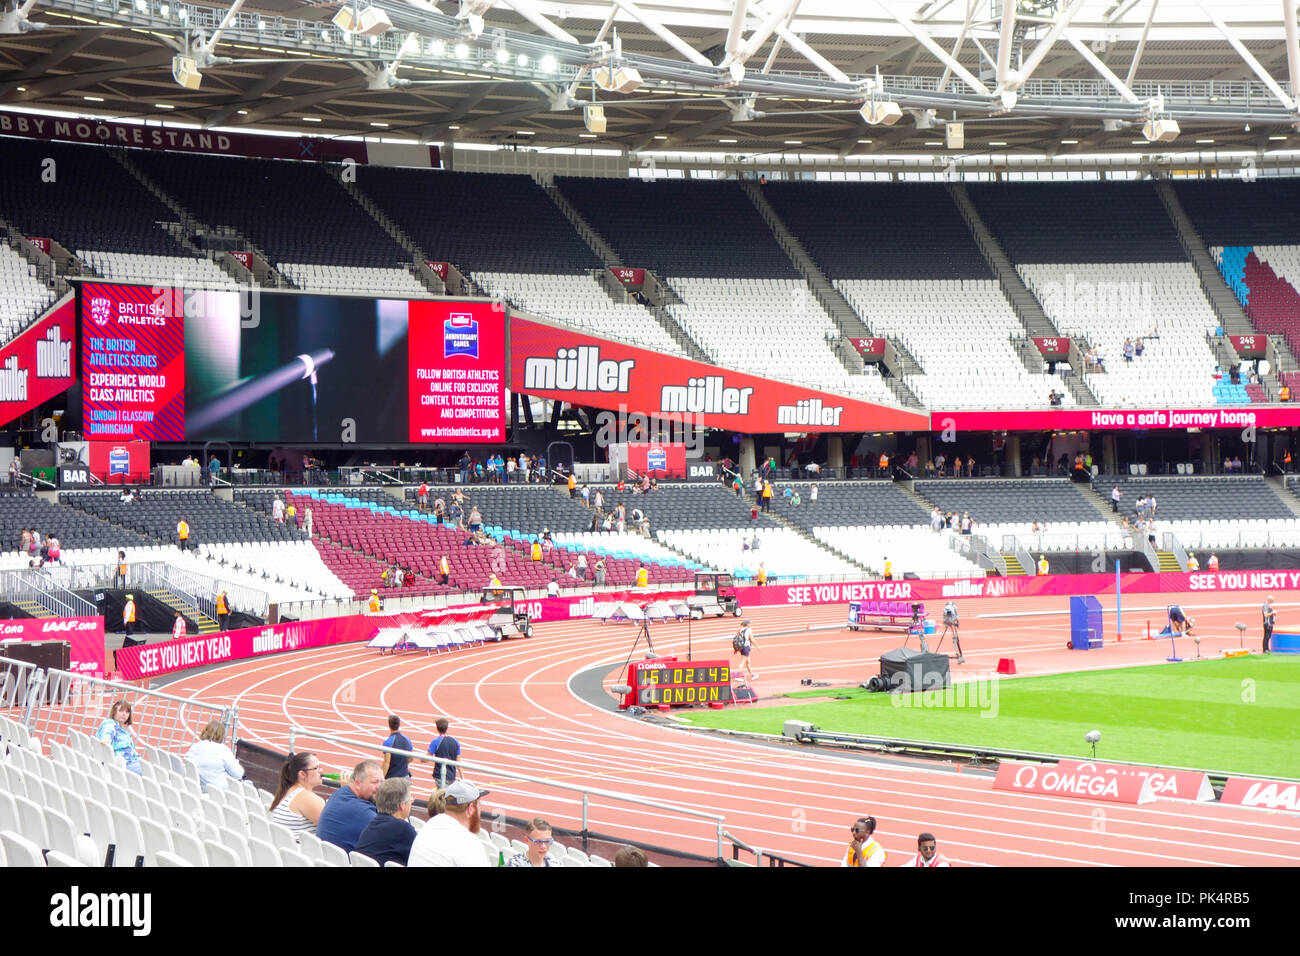 London Stadium, home of West Ham united football club and UK Athletics in the Queen Elizabeth Olympic Park. London, UK. - Stock Image